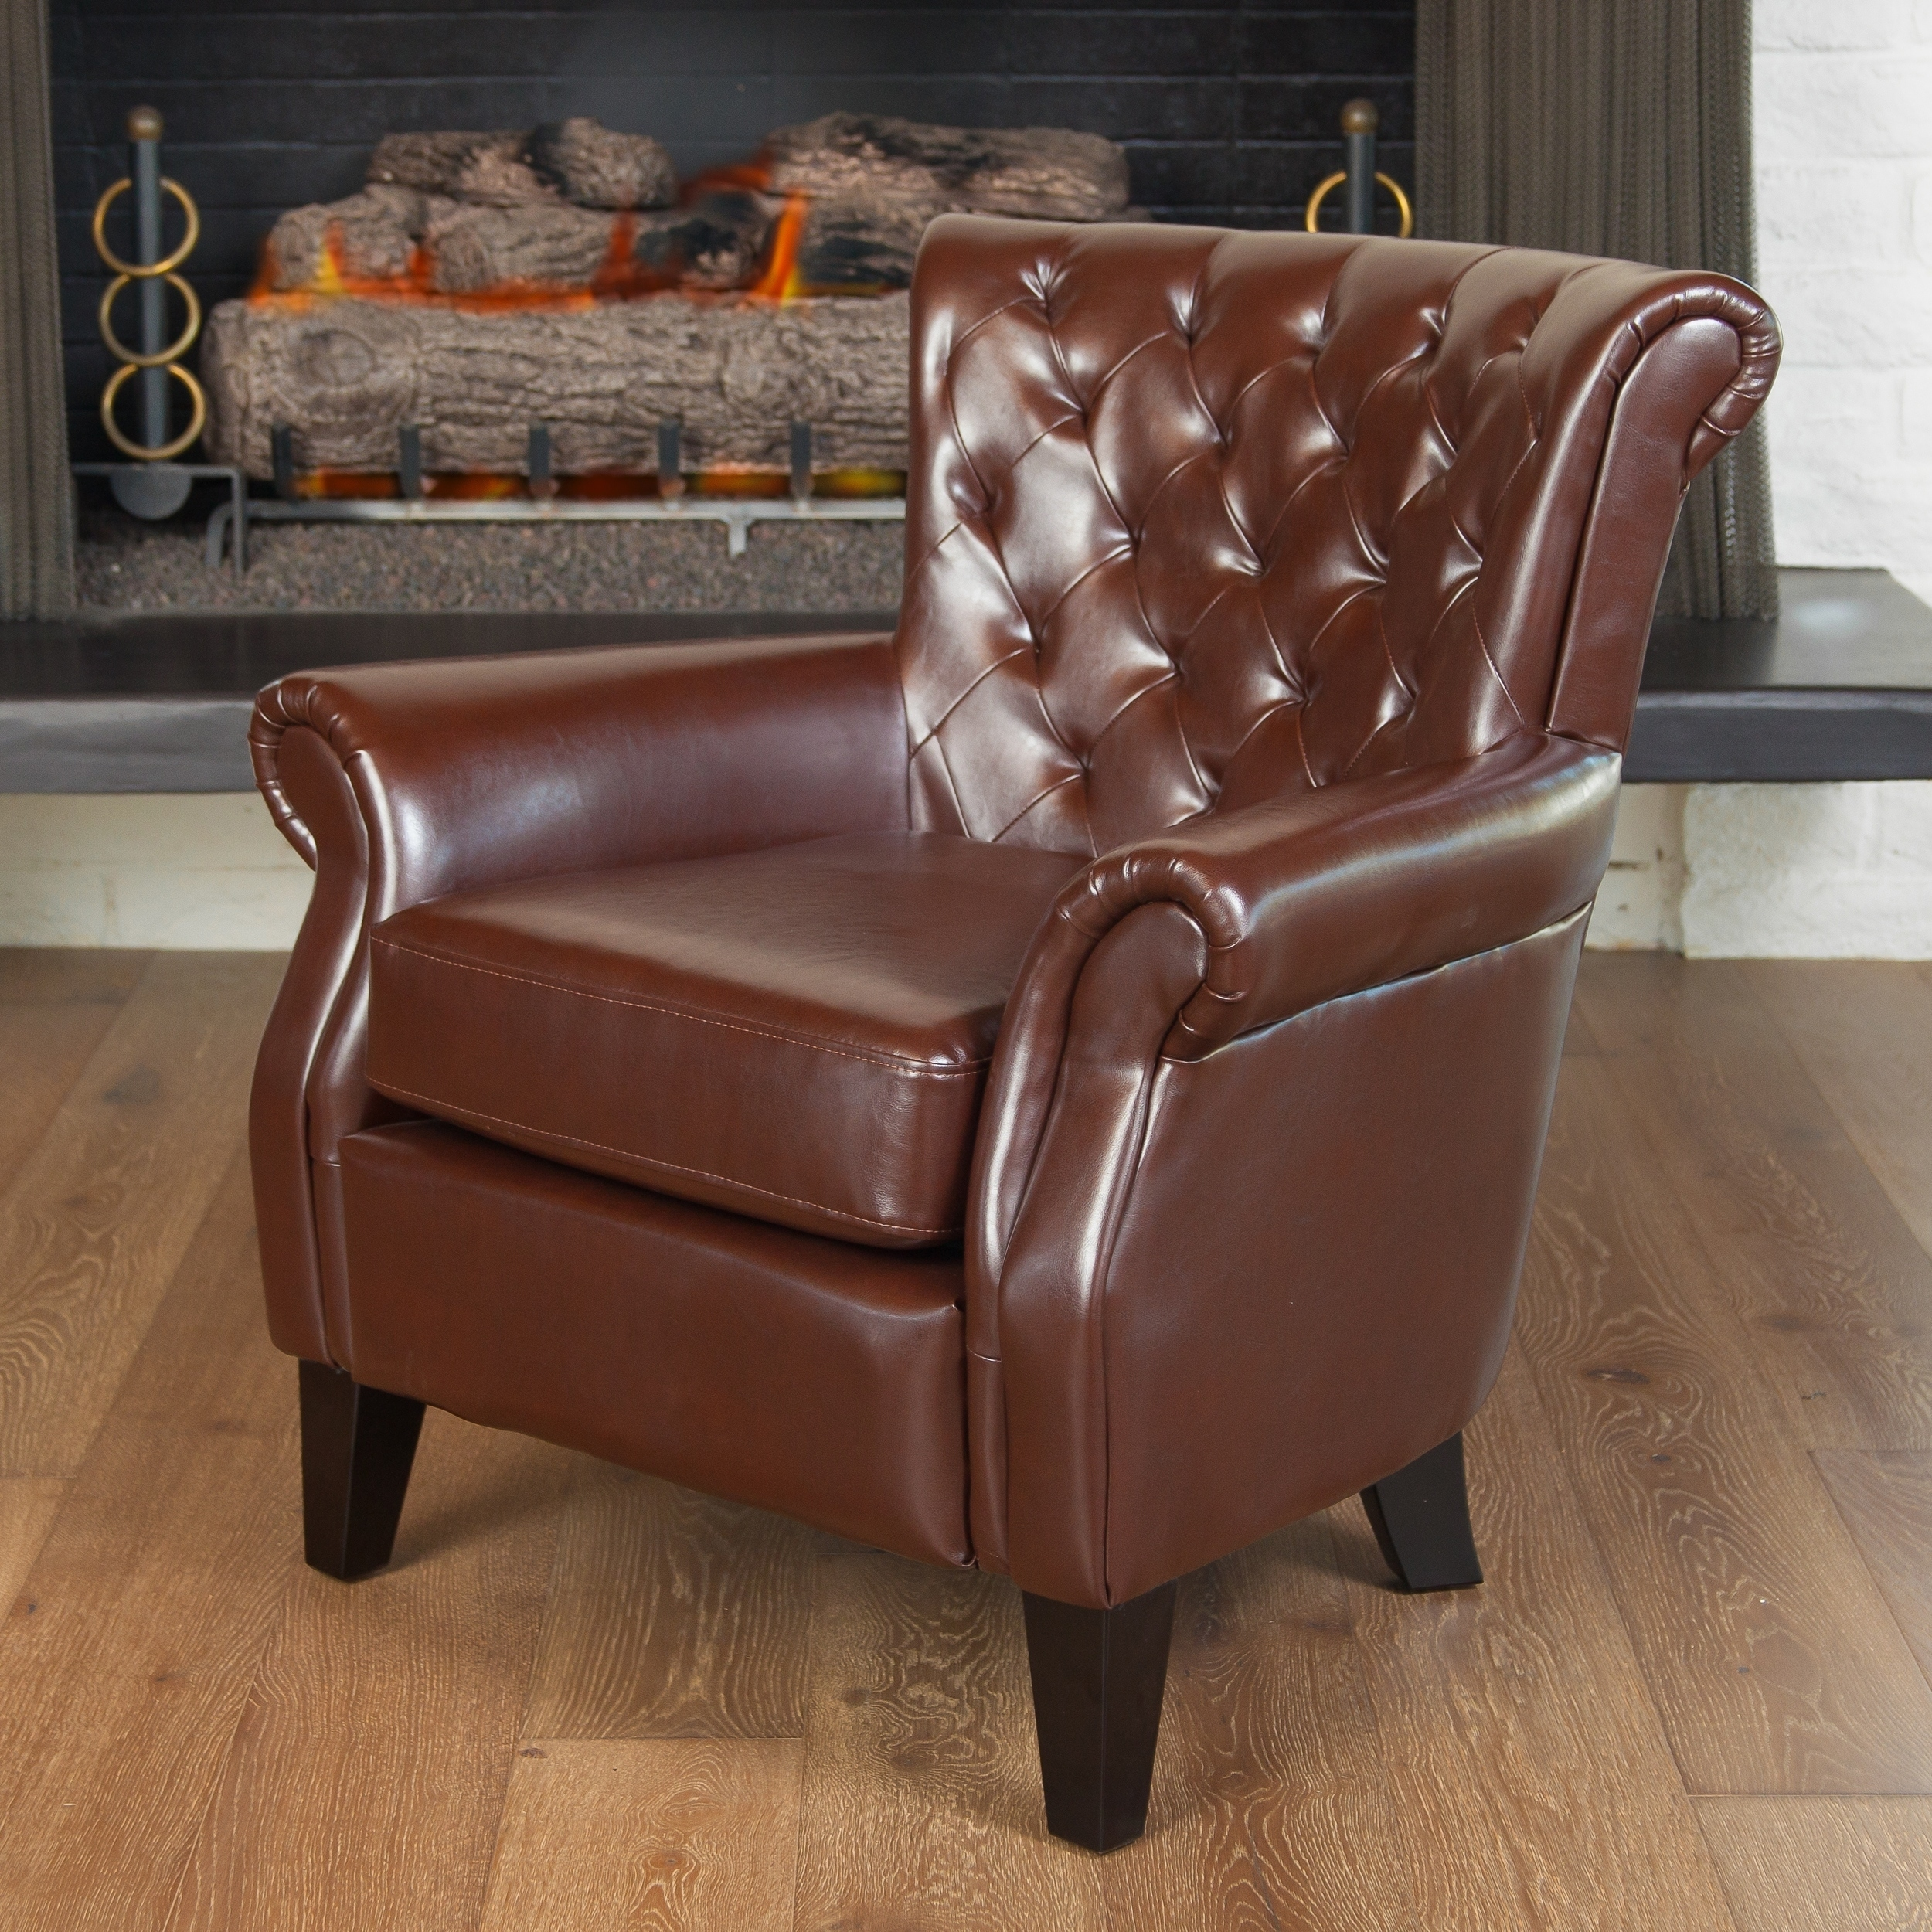 Details About Franklin Brown Tufted Bonded Leather Club Chair By  Christopher Knight Home